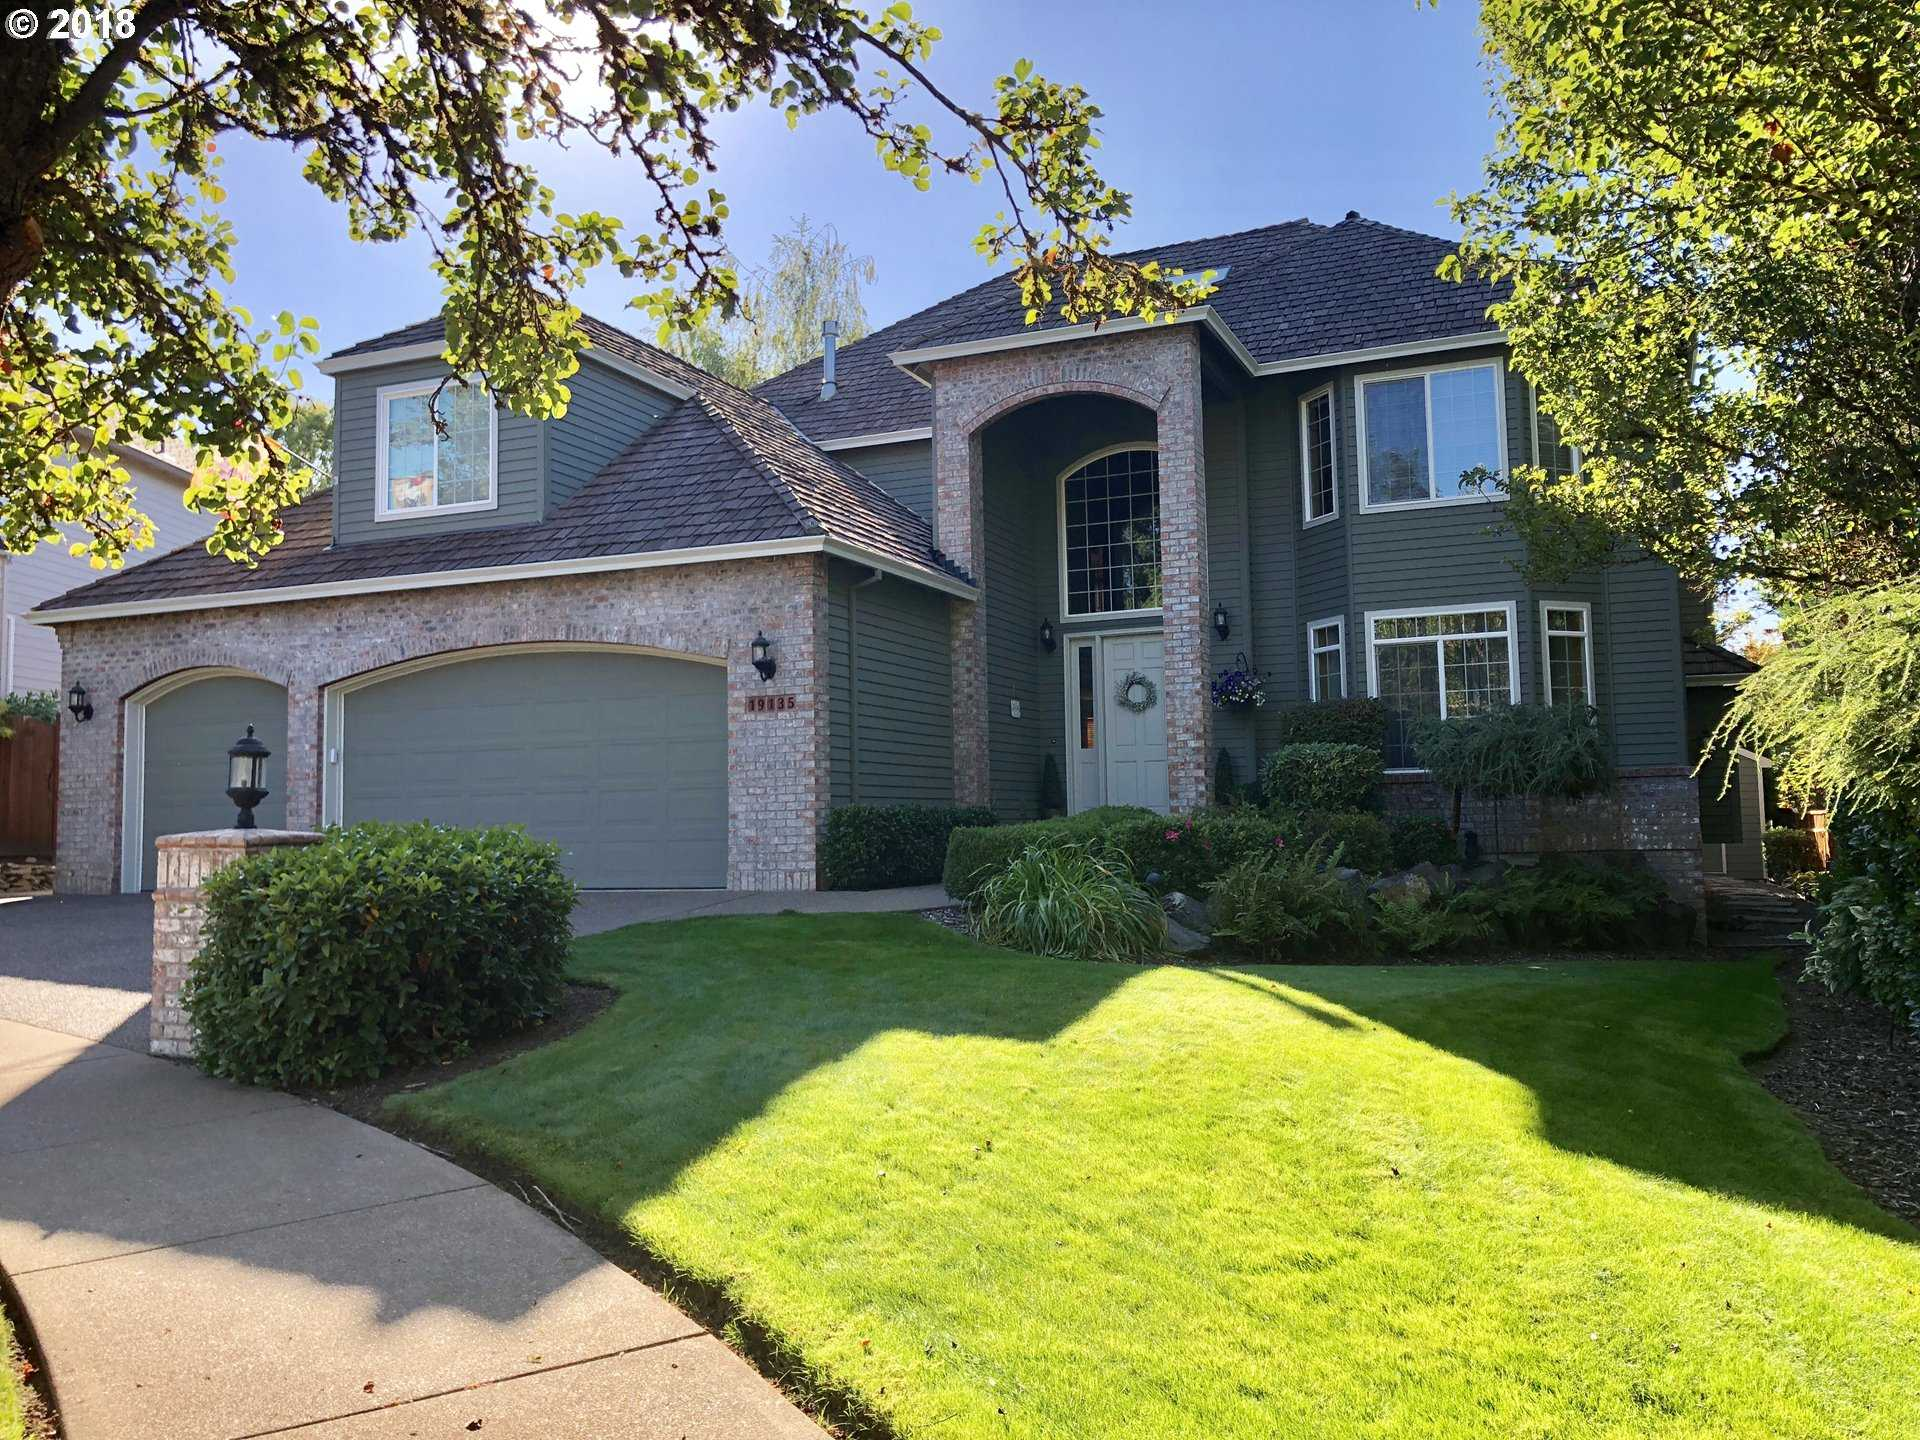 $729,900 - 5Br/4Ba -  for Sale in Tualatin